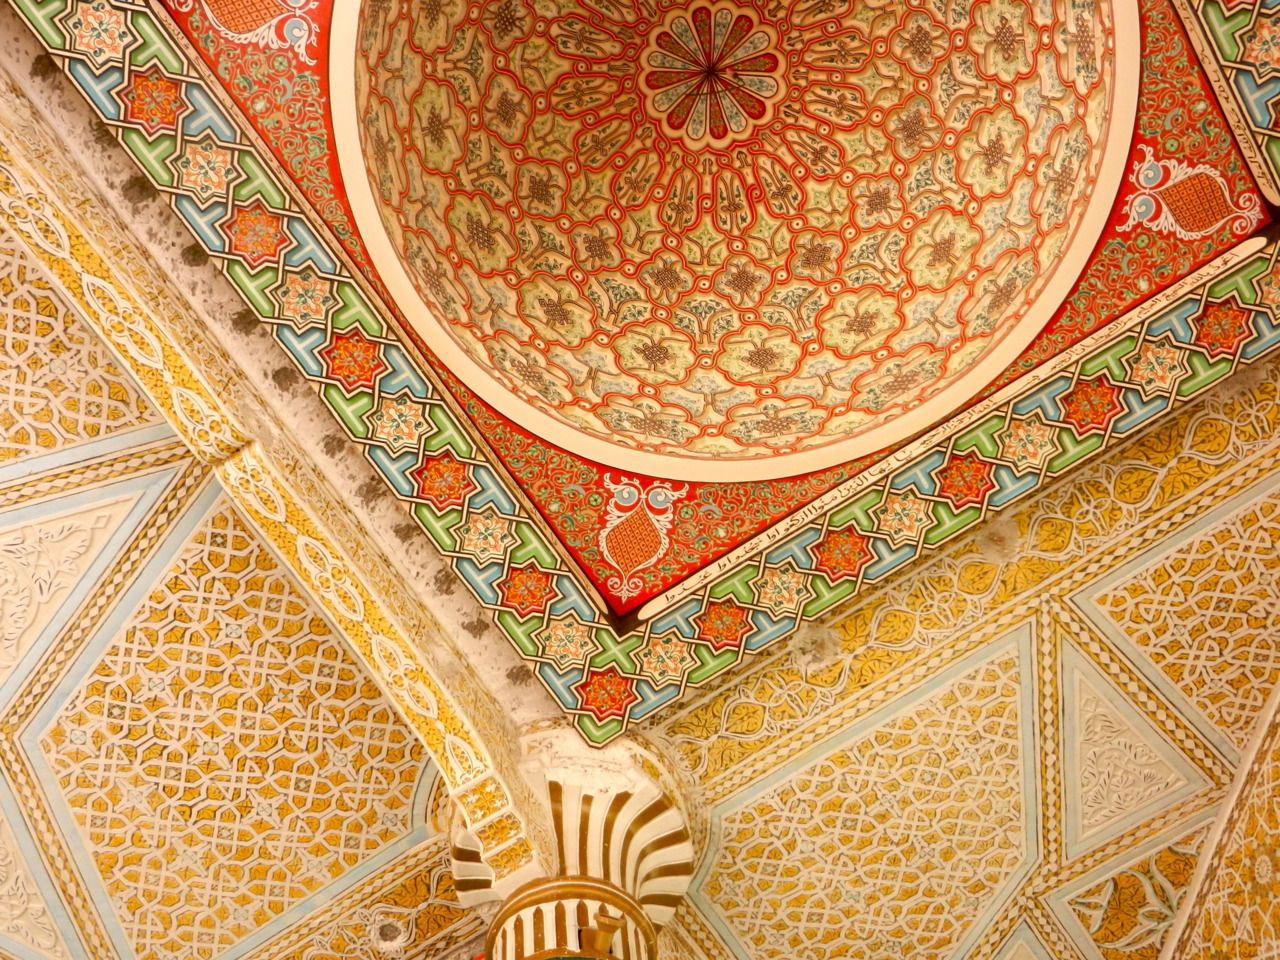 Detail from the Grande Mosquée,Touba, Senegal (With images